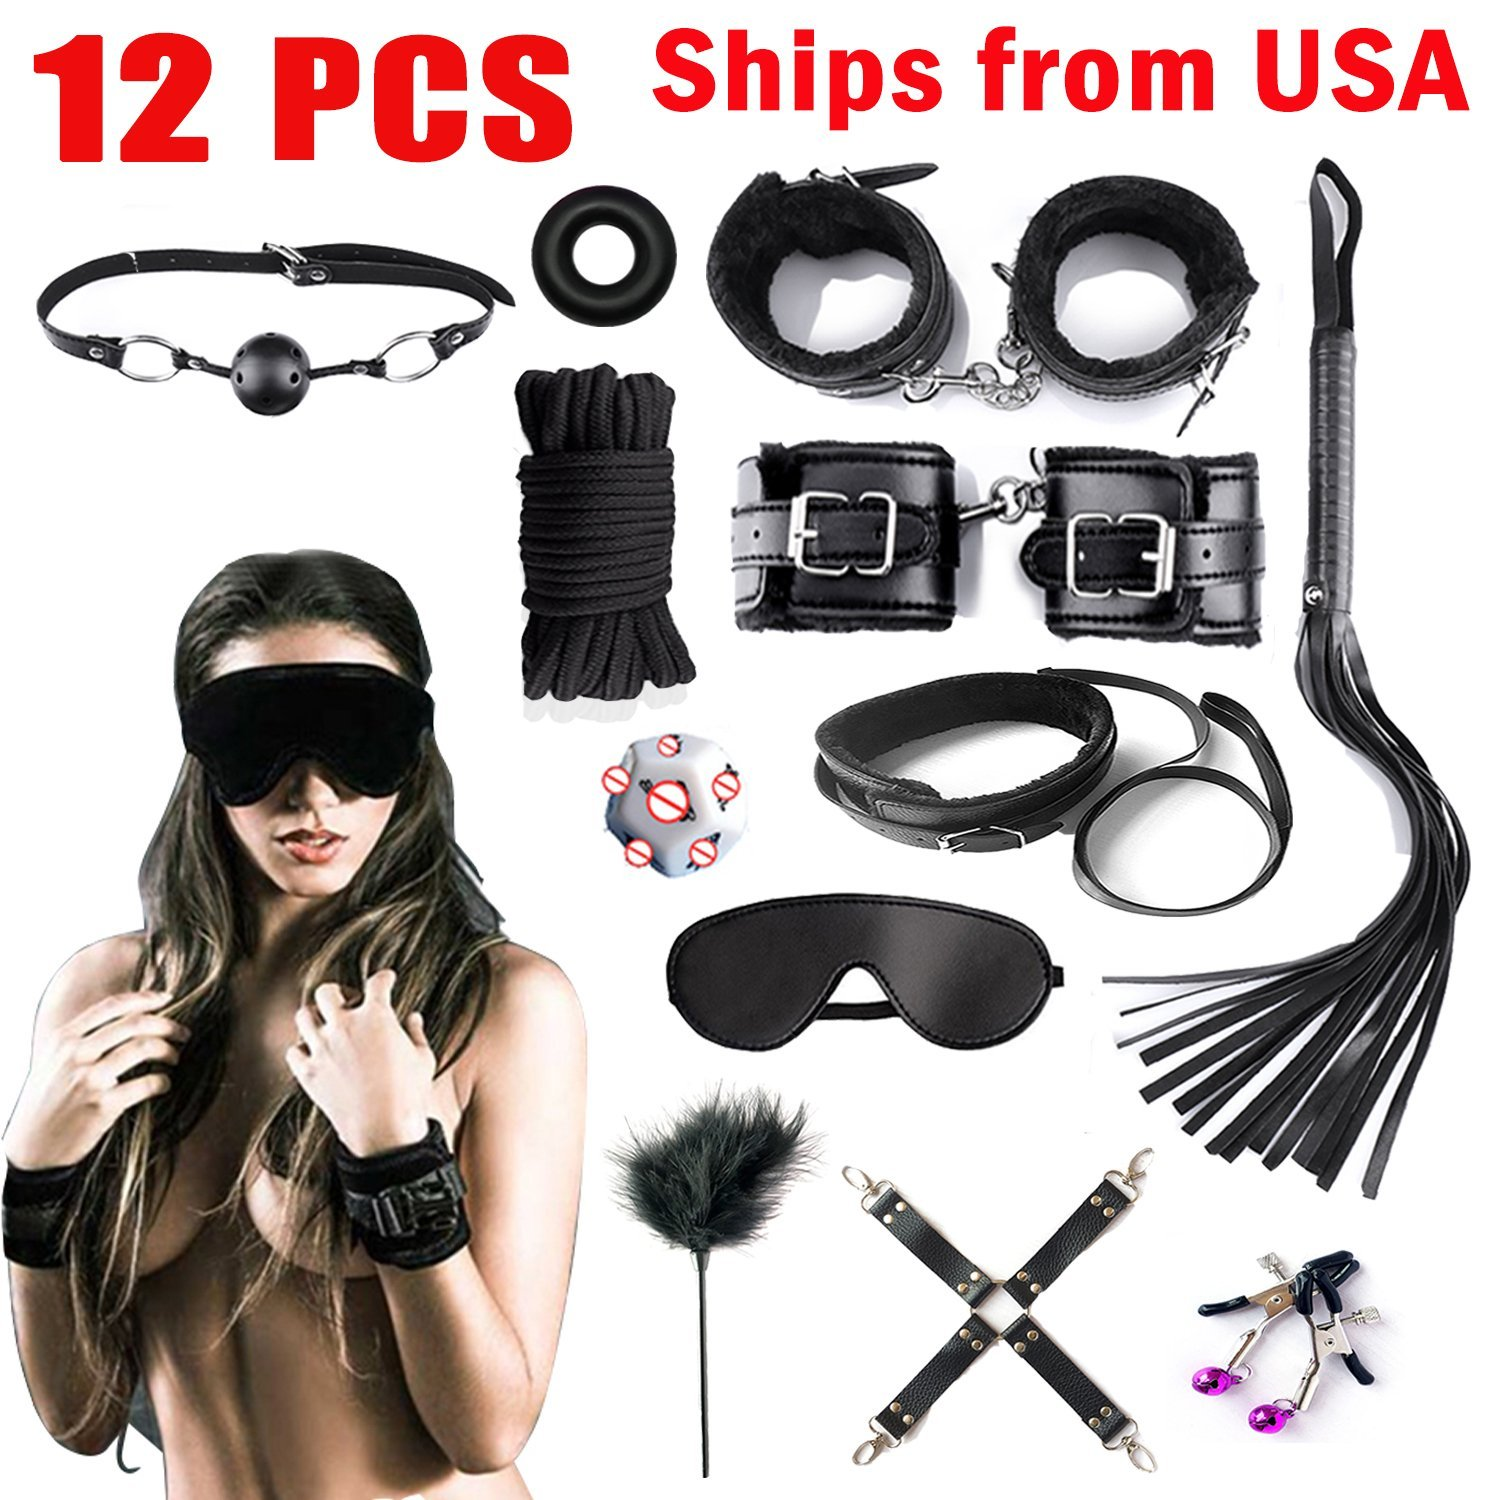 Handcuffs for Under bed restraint Kit Bondage Bondageromance Fetish Sex Play BDSM SM Restraining Straps Thigh Game Tie up Mattress Harness Things Blindfold Whips Toys Adults Women xzdvsd by ALUTT